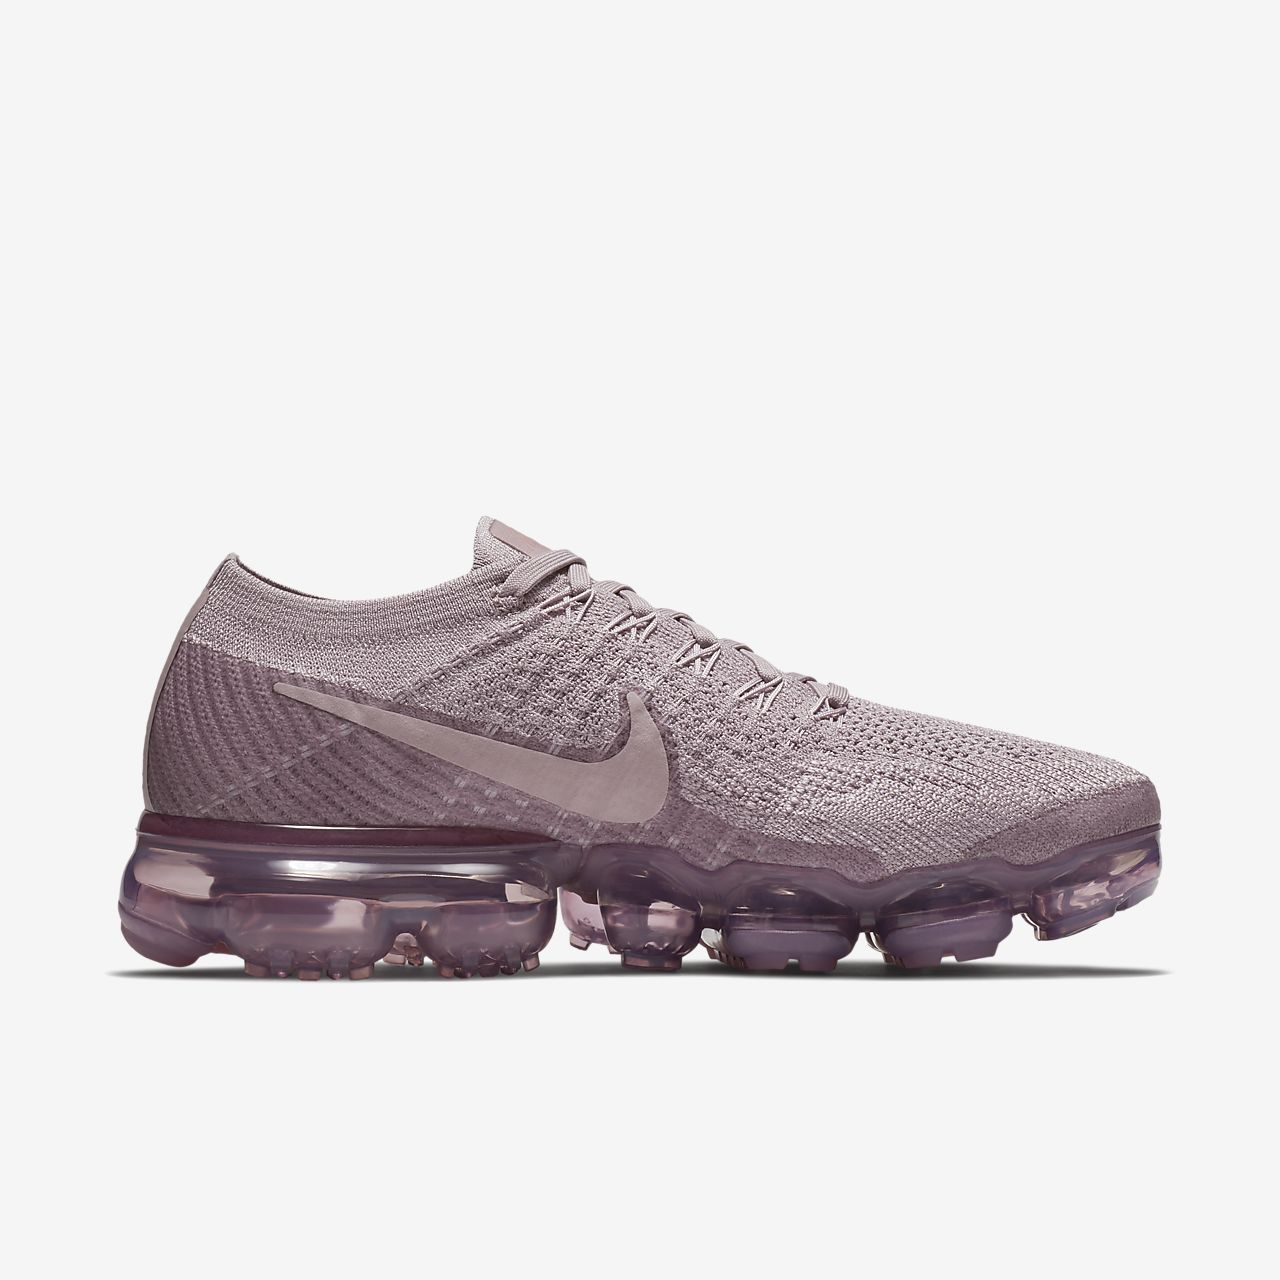 c1f6ebb4154 nike vapormax trail shoes Men s Nike shox size 13 blue and red in ...